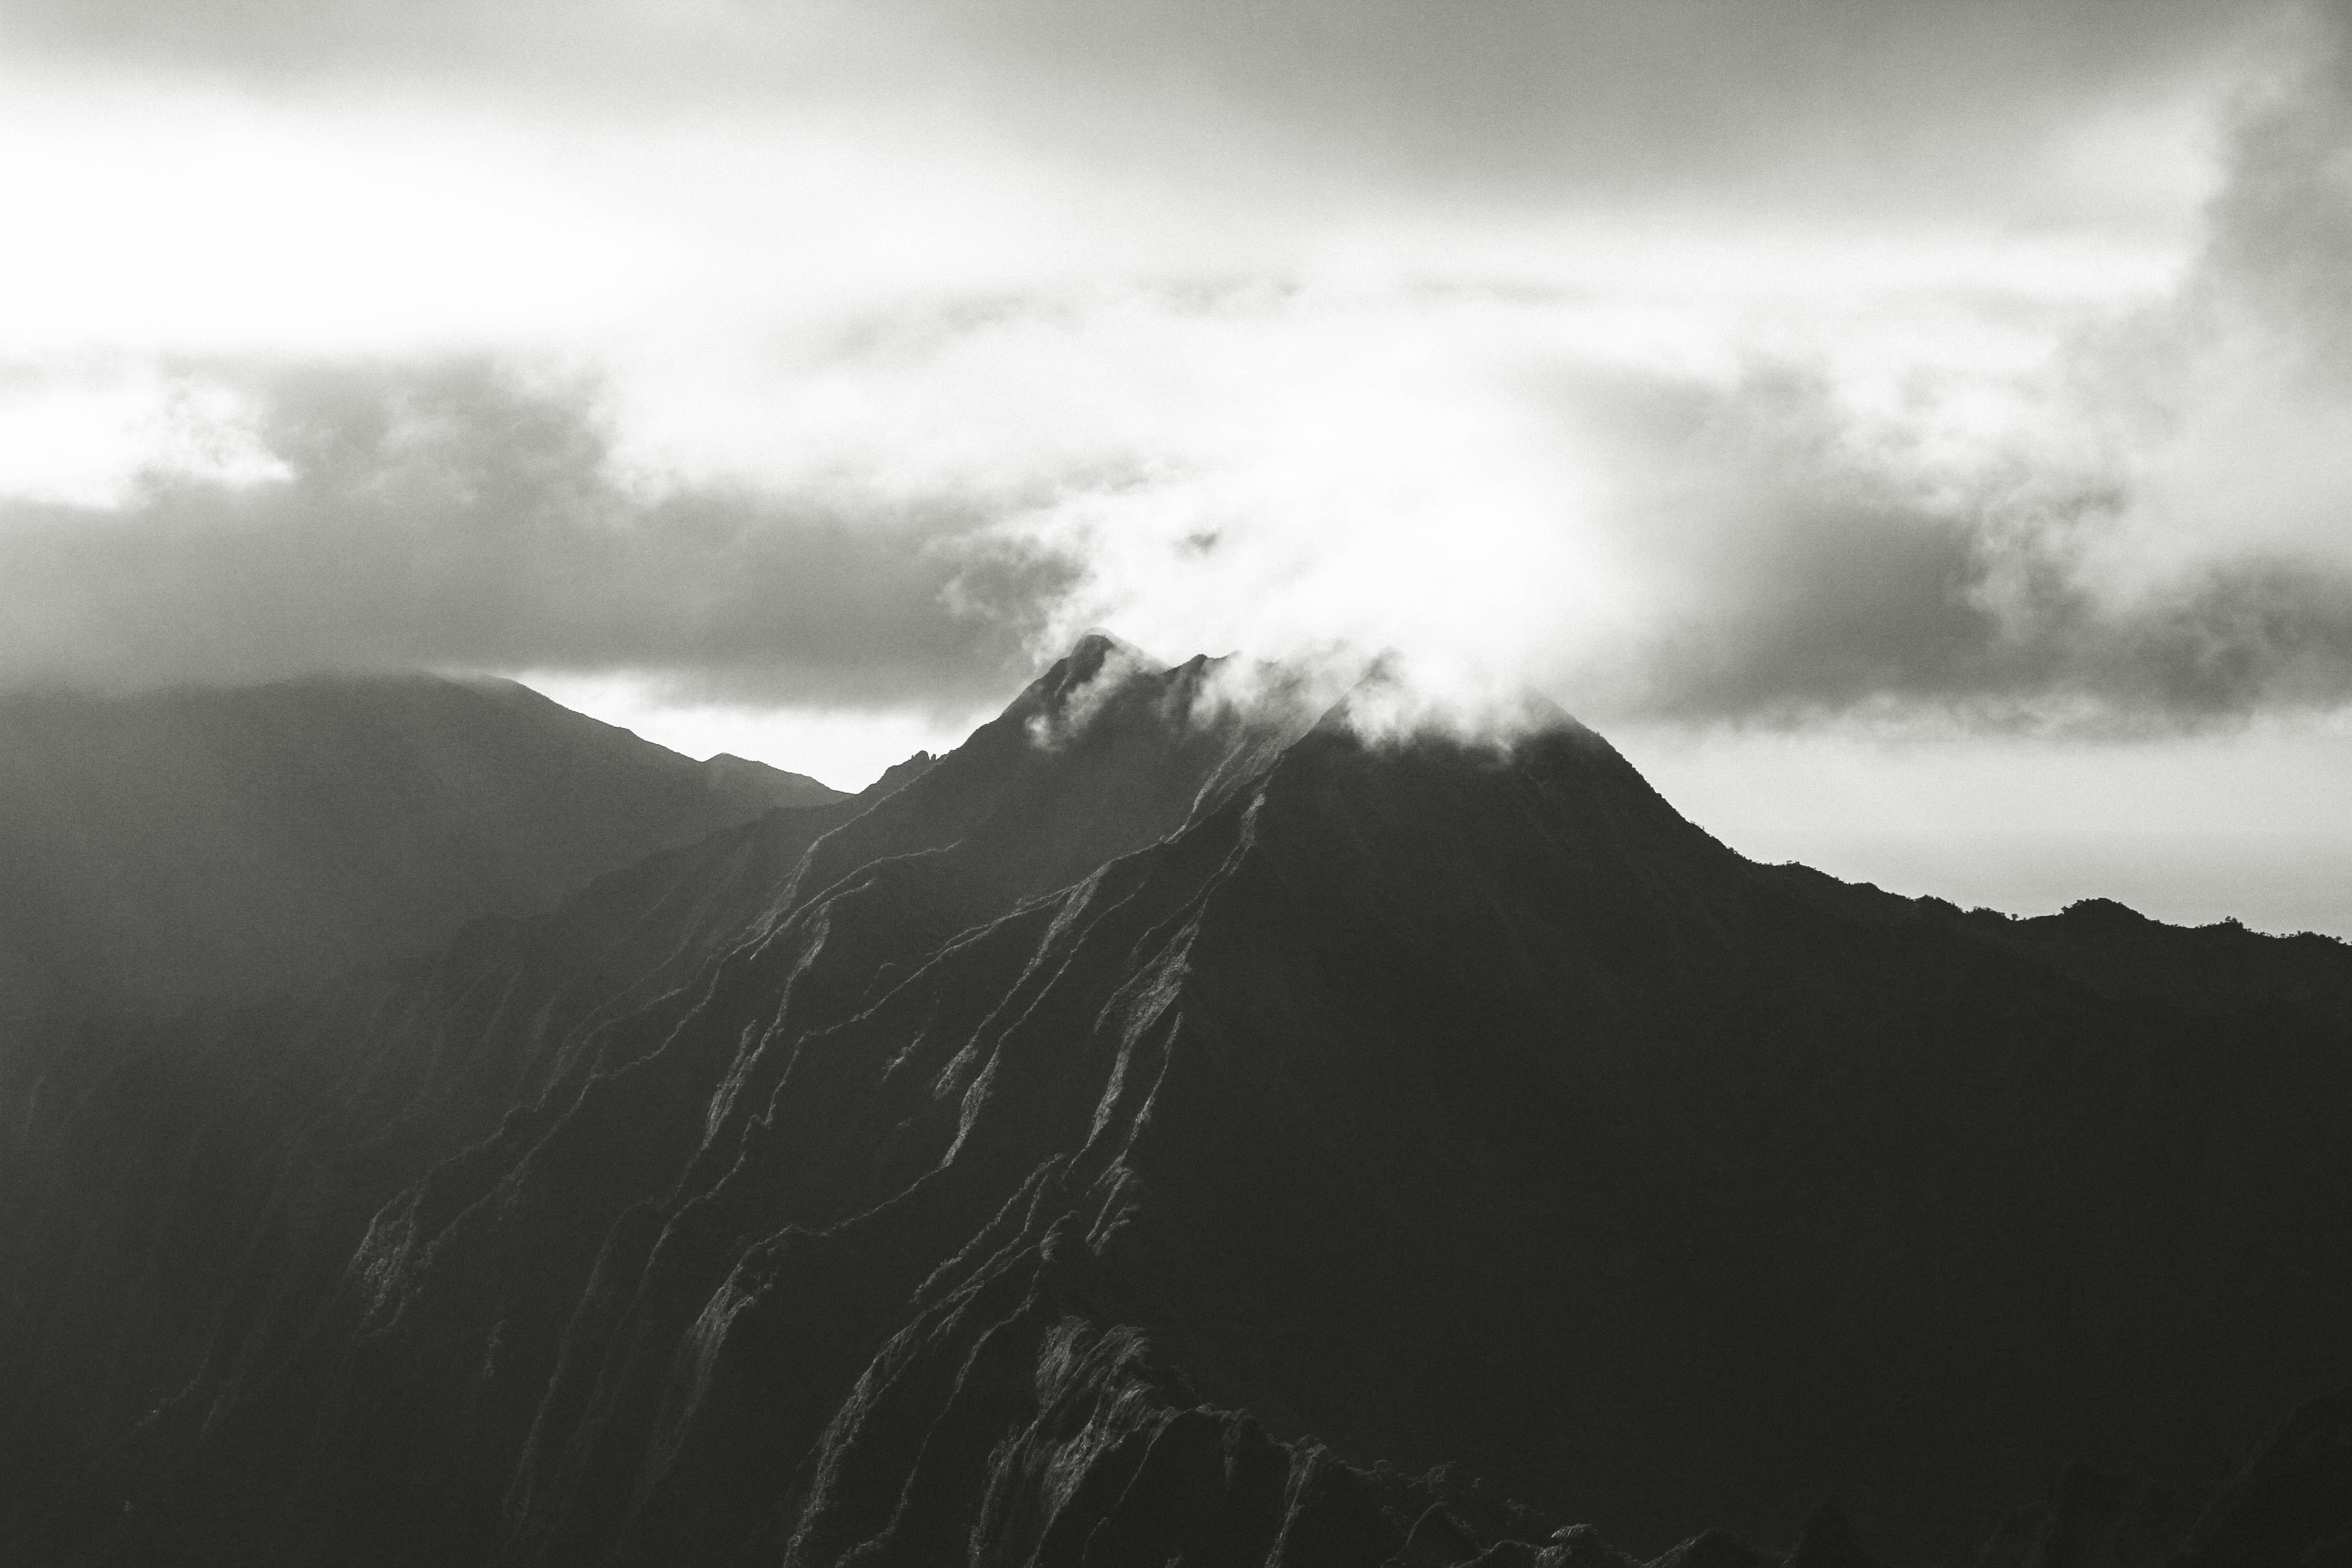 A black and white photo capturing the sun rising over a mountain in Hawaii.